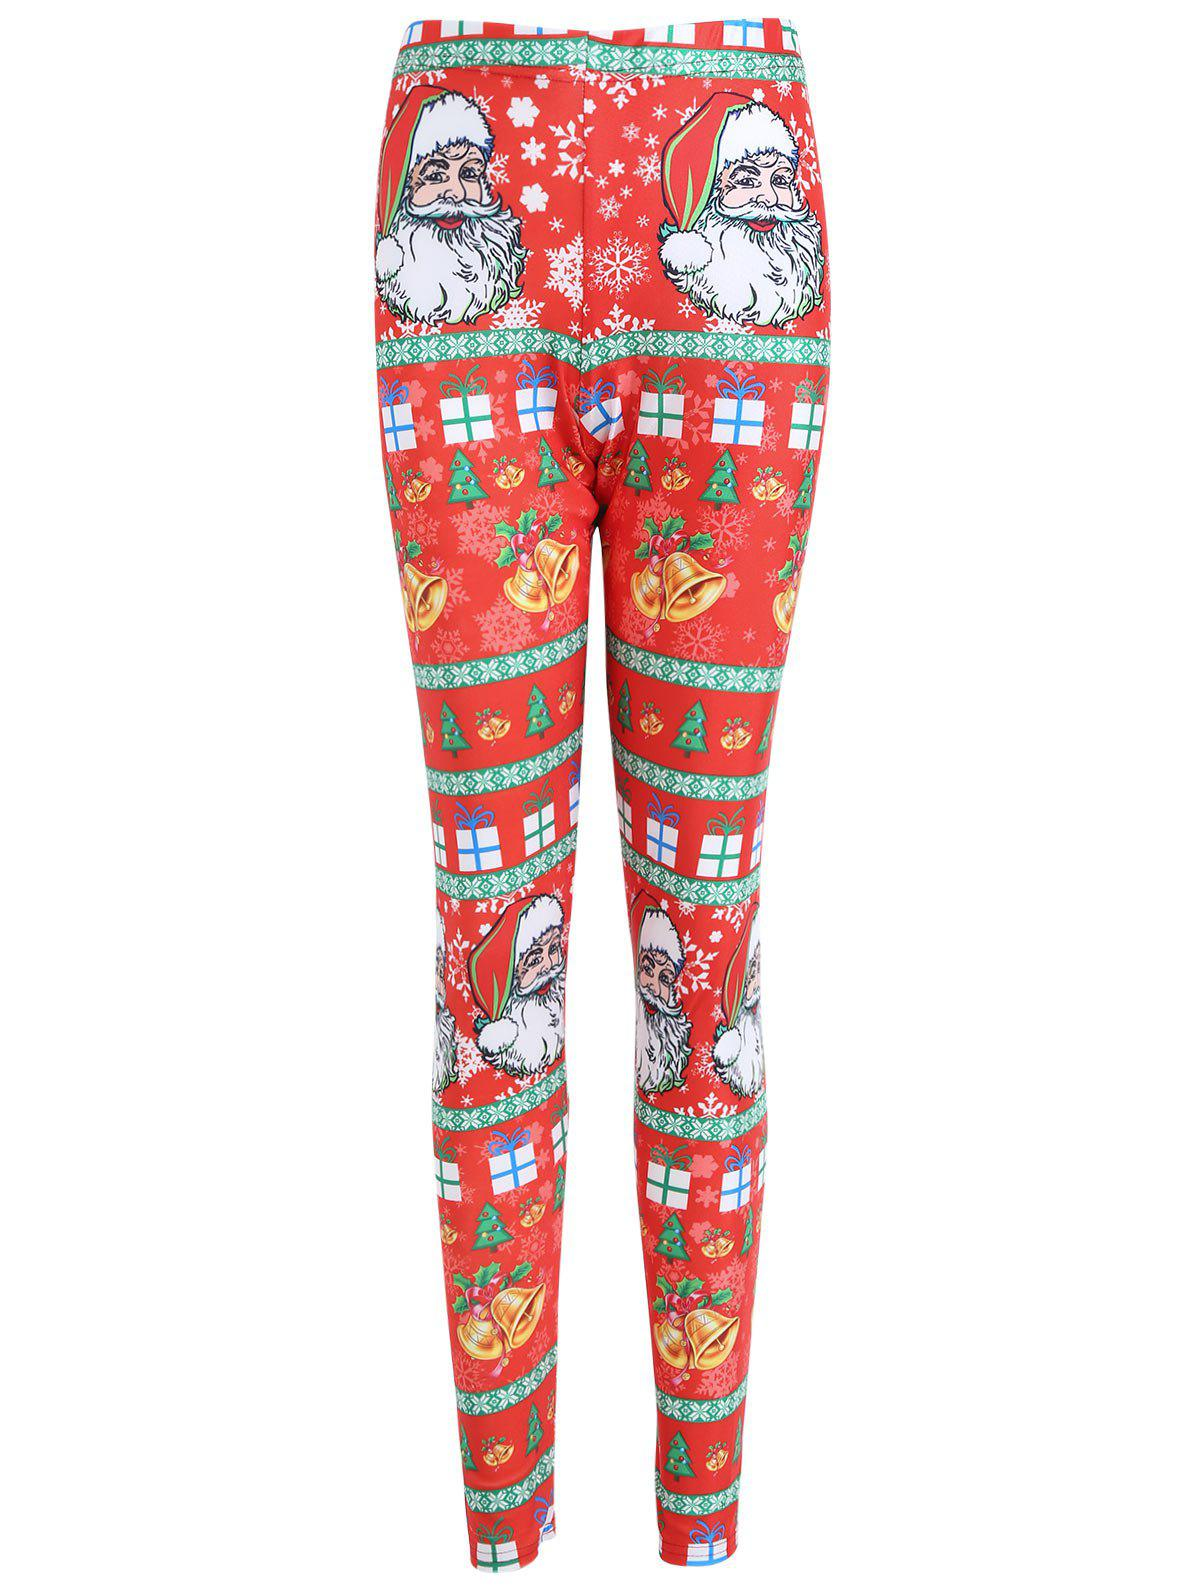 Christmas Bell Santa Claus Print Plus Size LeggingsWOMEN<br><br>Size: 3XL; Color: RED; Style: Fashion; Length: Normal; Material: Cotton,Polyester,Spandex; Fit Type: Skinny; Waist Type: High; Closure Type: Elastic Waist; Pattern Type: Print; Pant Style: Pencil Pants; Weight: 0.2100kg; Package Contents: 1 x Leggings;